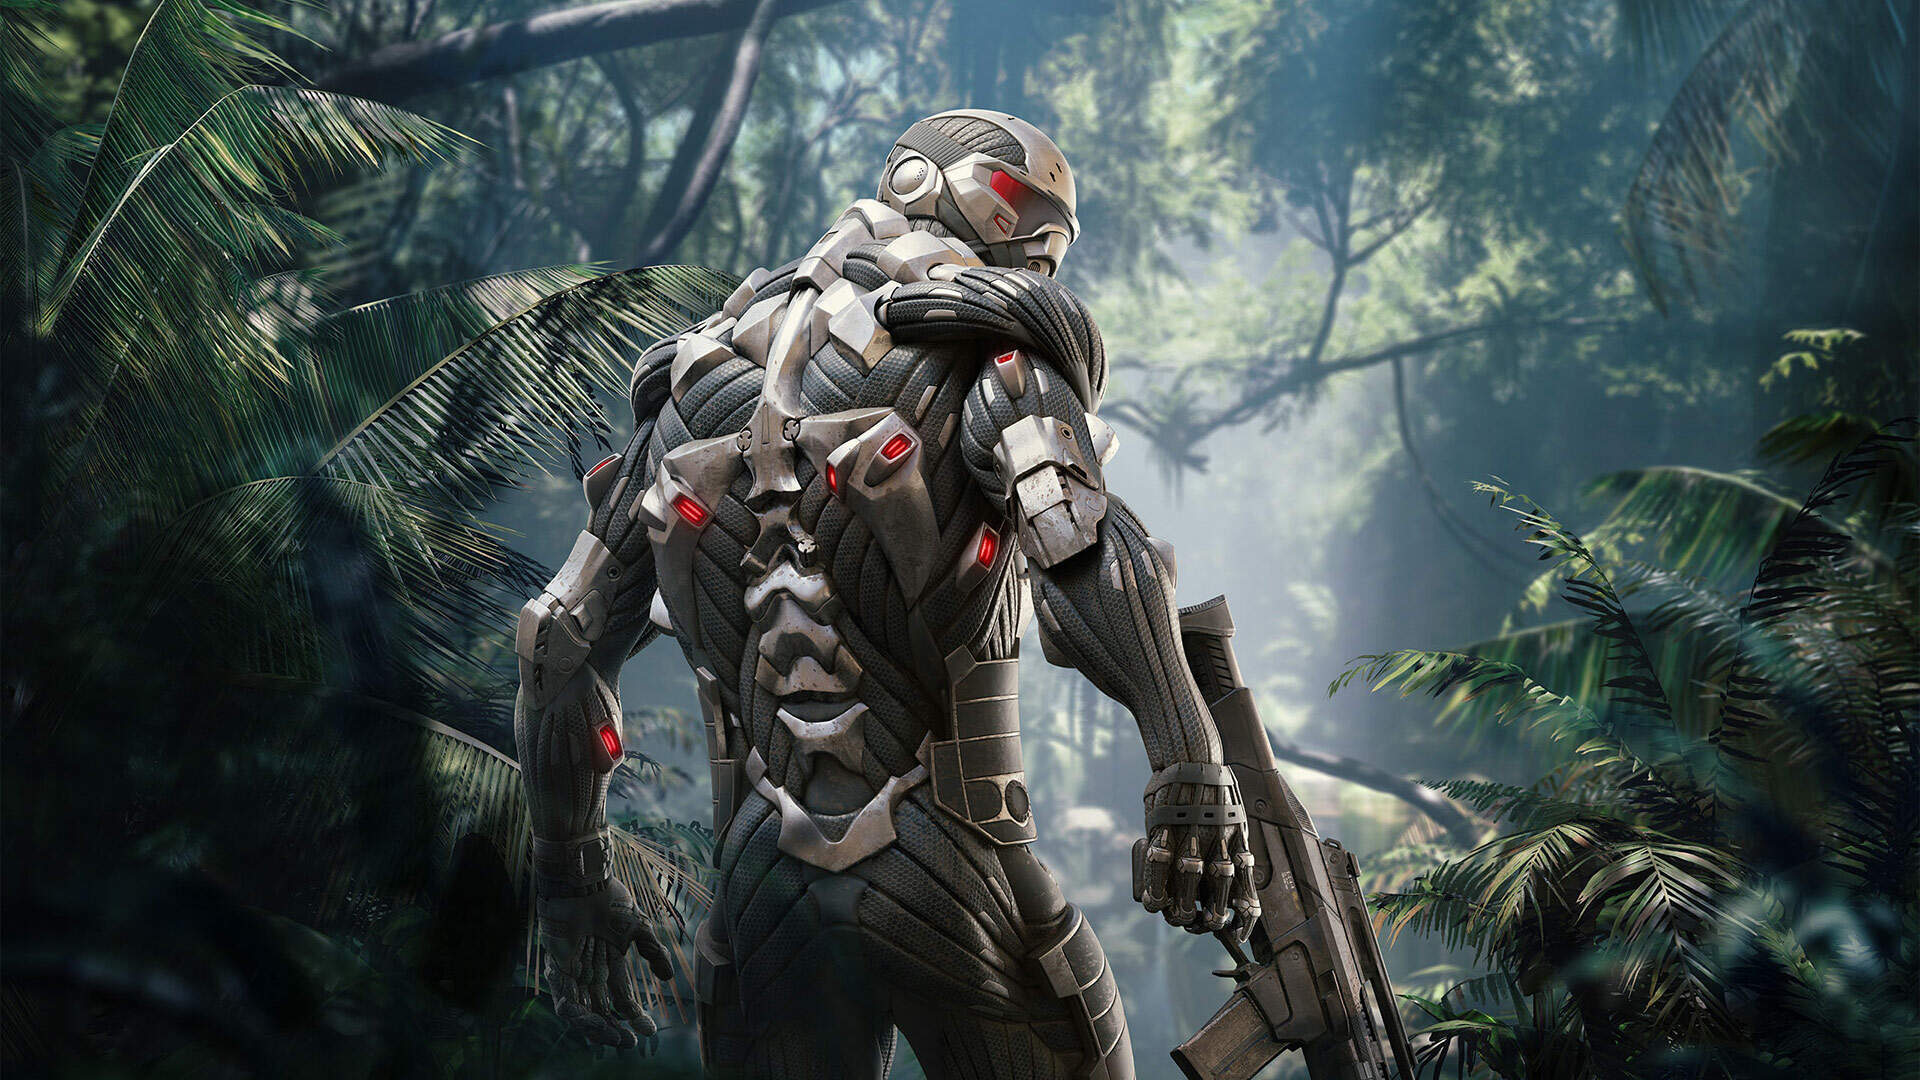 We'll Get Our First Real Look at Crysis Remastered's Gameplay Later This Week